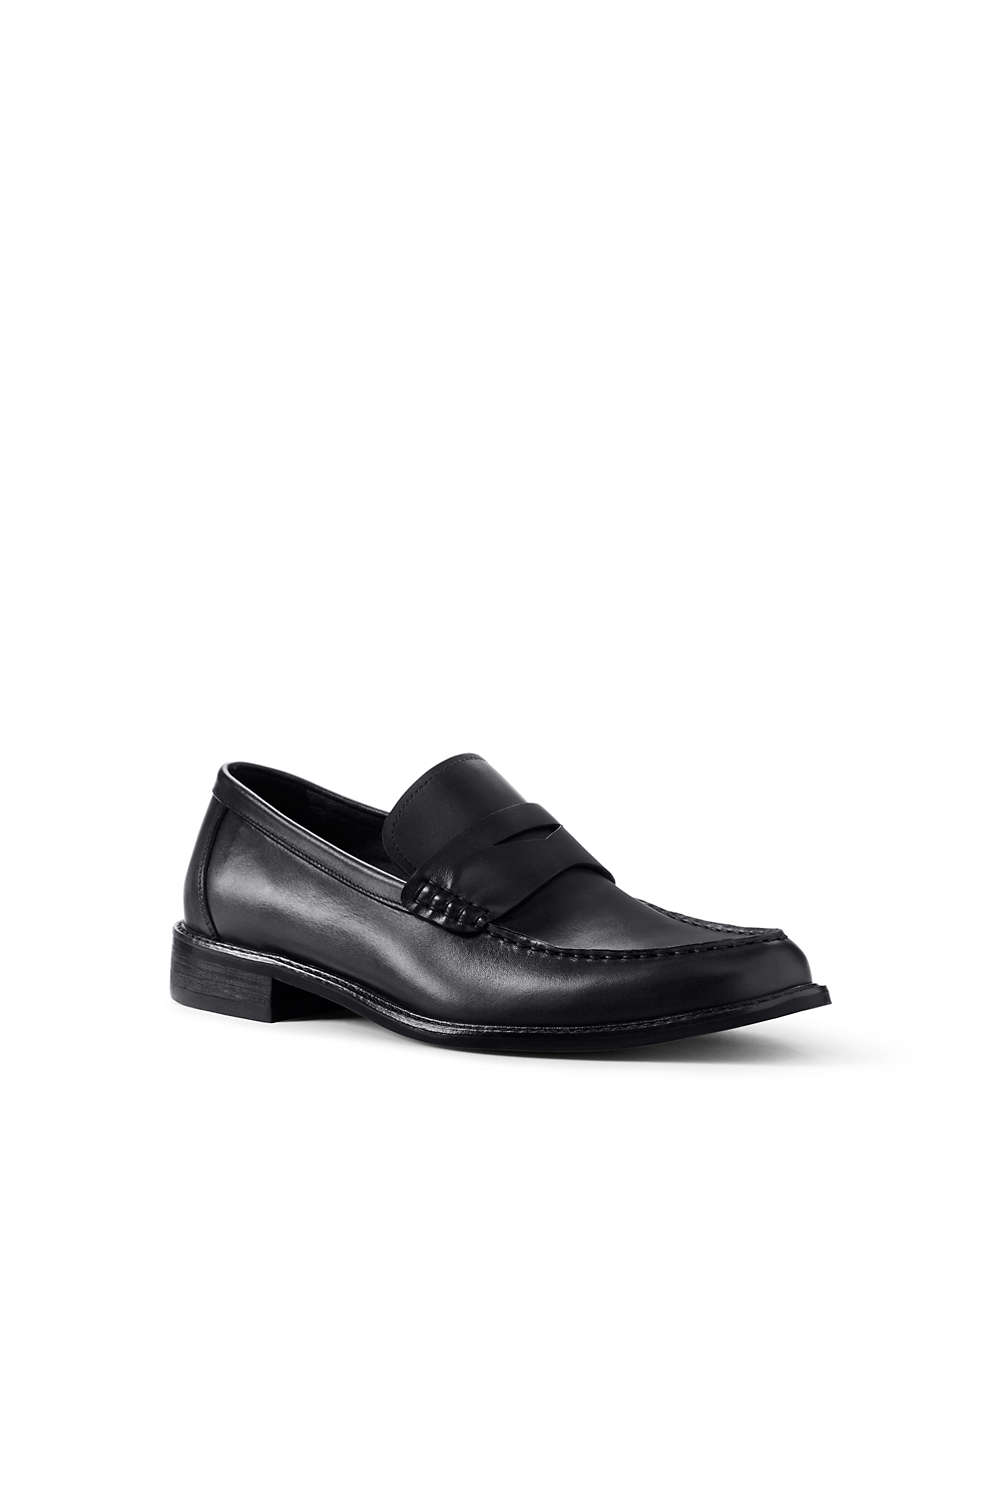 ae704b6239e Men s Classic Penny Loafers from Lands  End